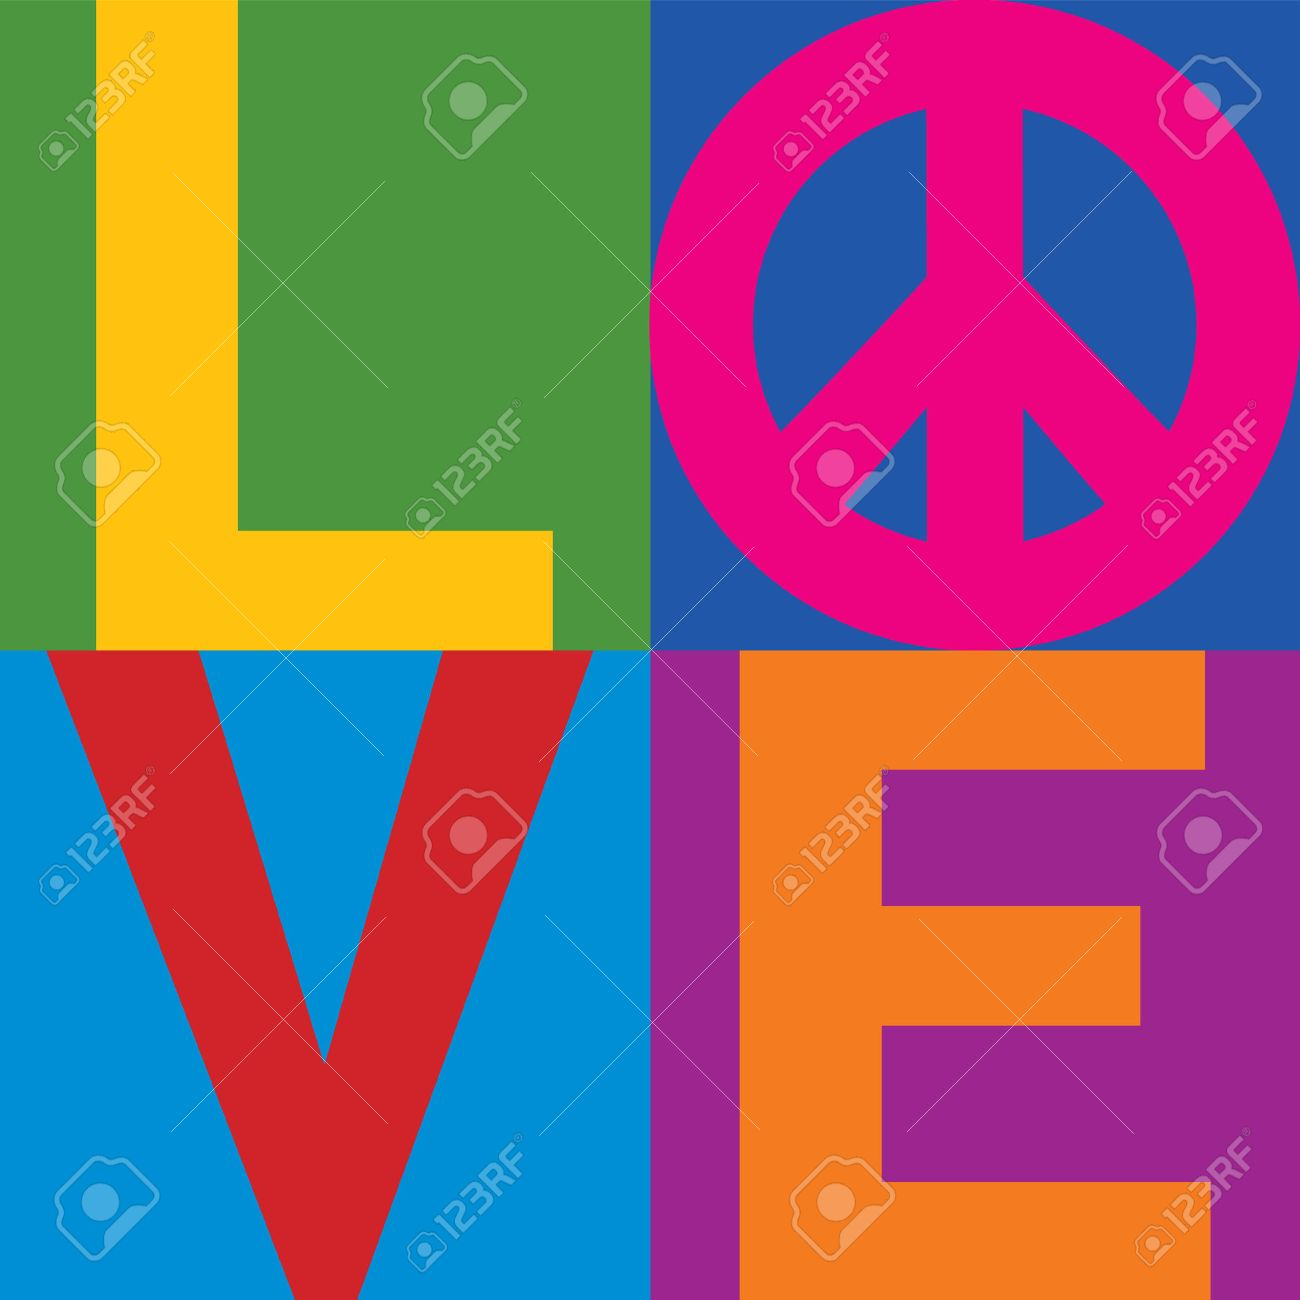 type design of love with peace symbol in a stacked color block